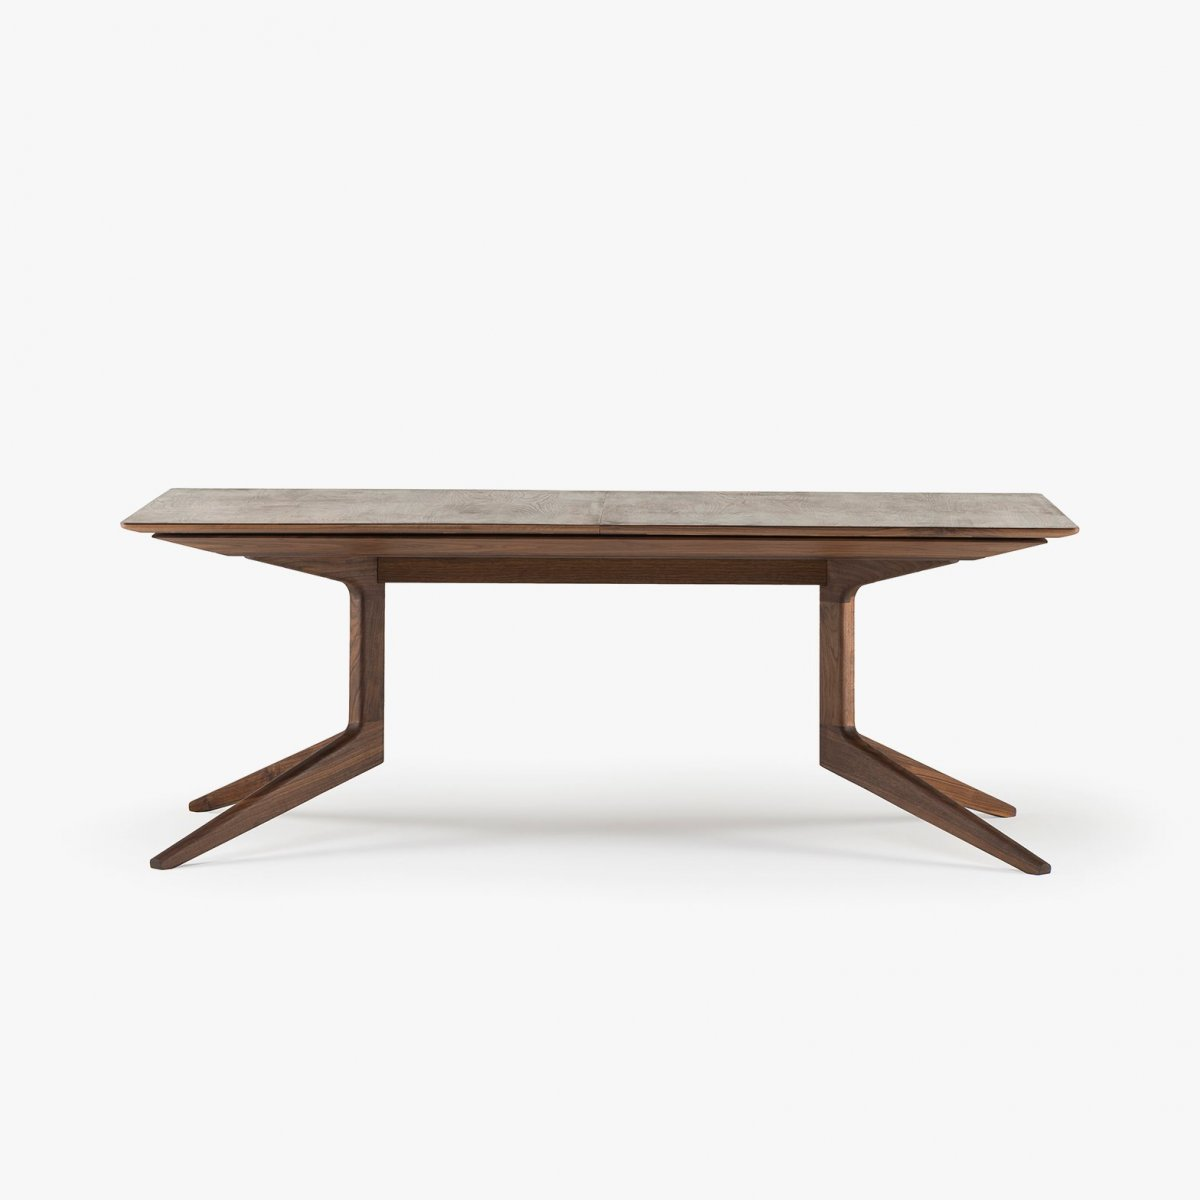 341E Light Extending Table in Danish oiled walnut, no leaves in place.